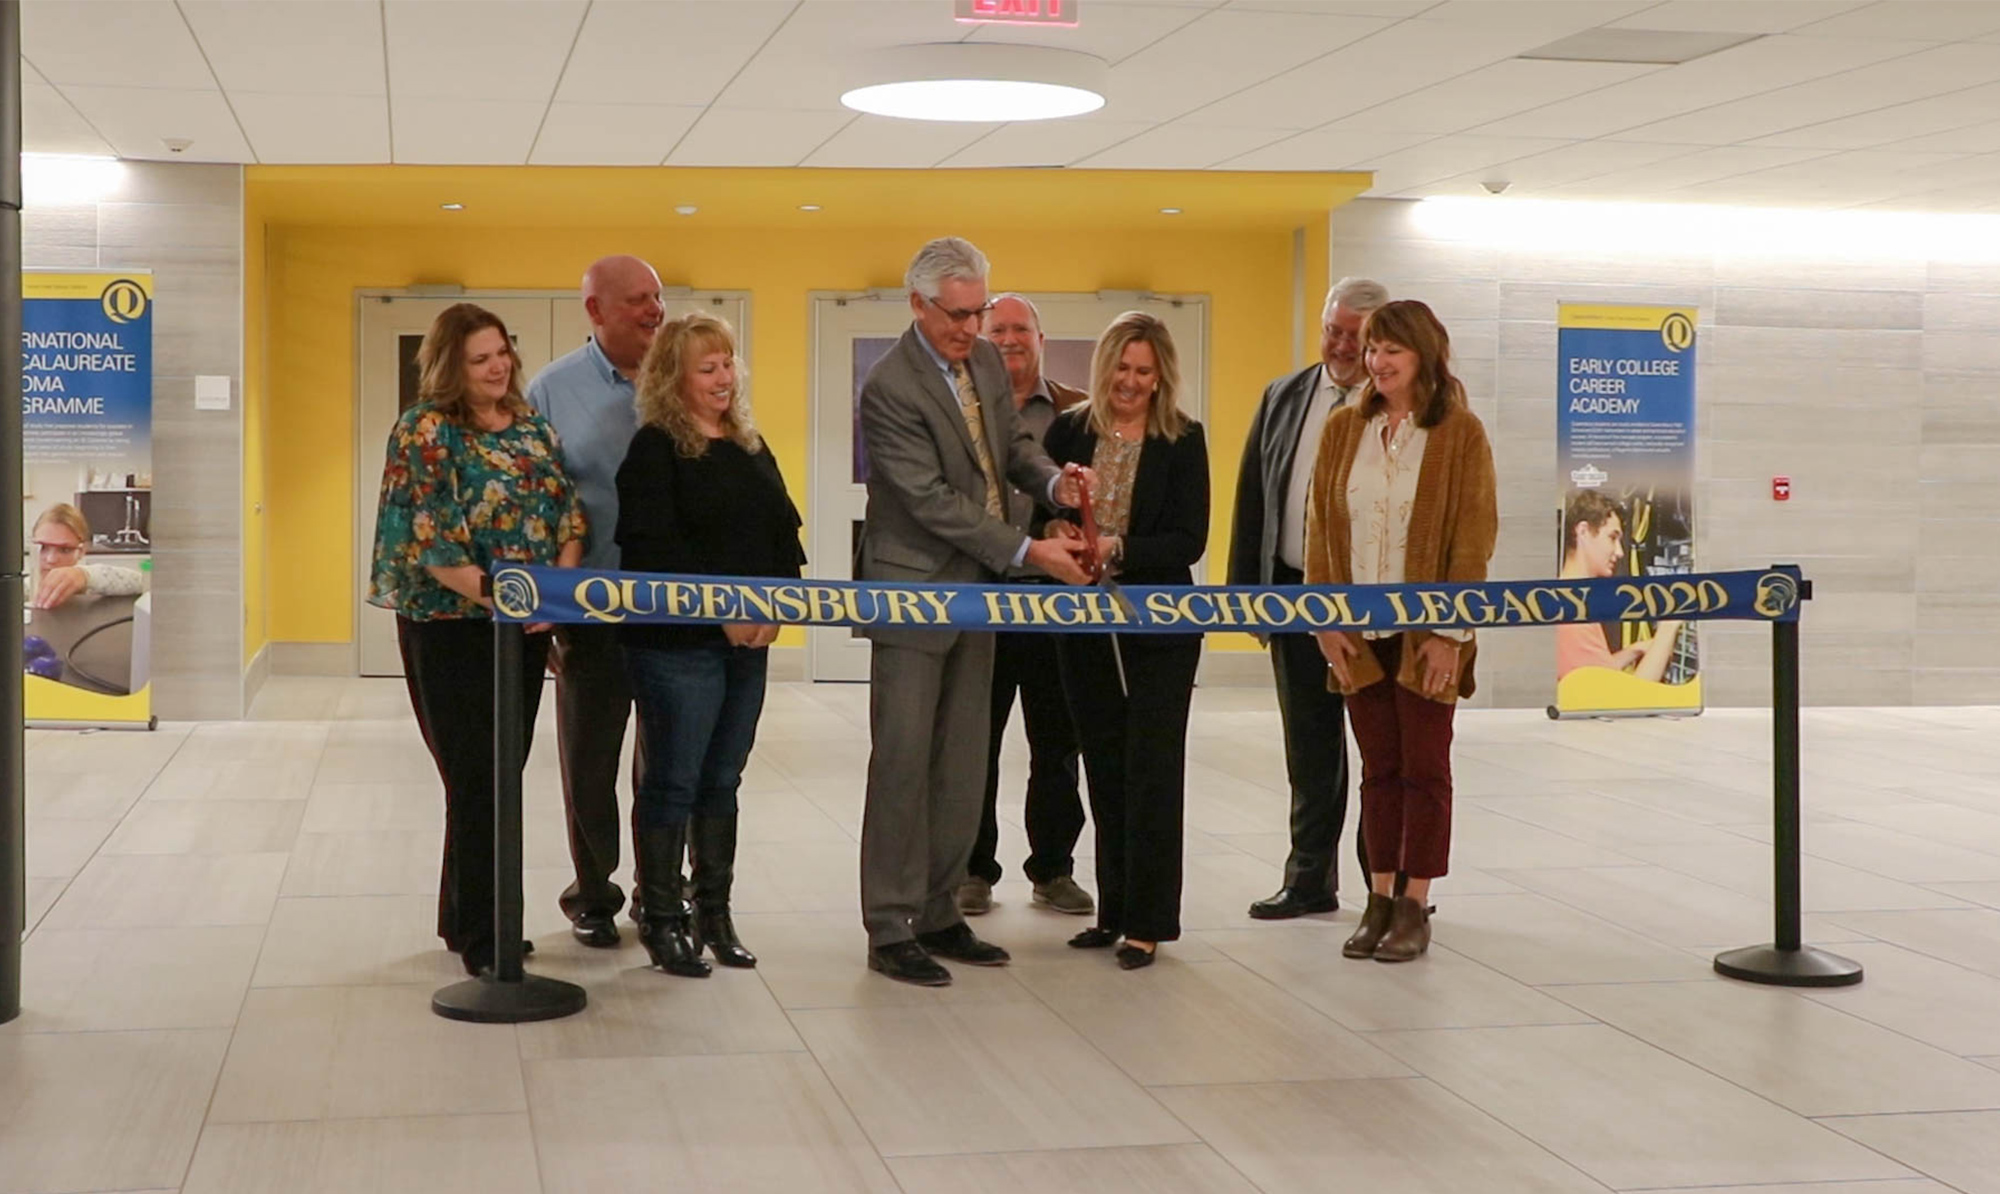 Queensbury UFSD Cuts Ribbon on Legacy 2020 Project